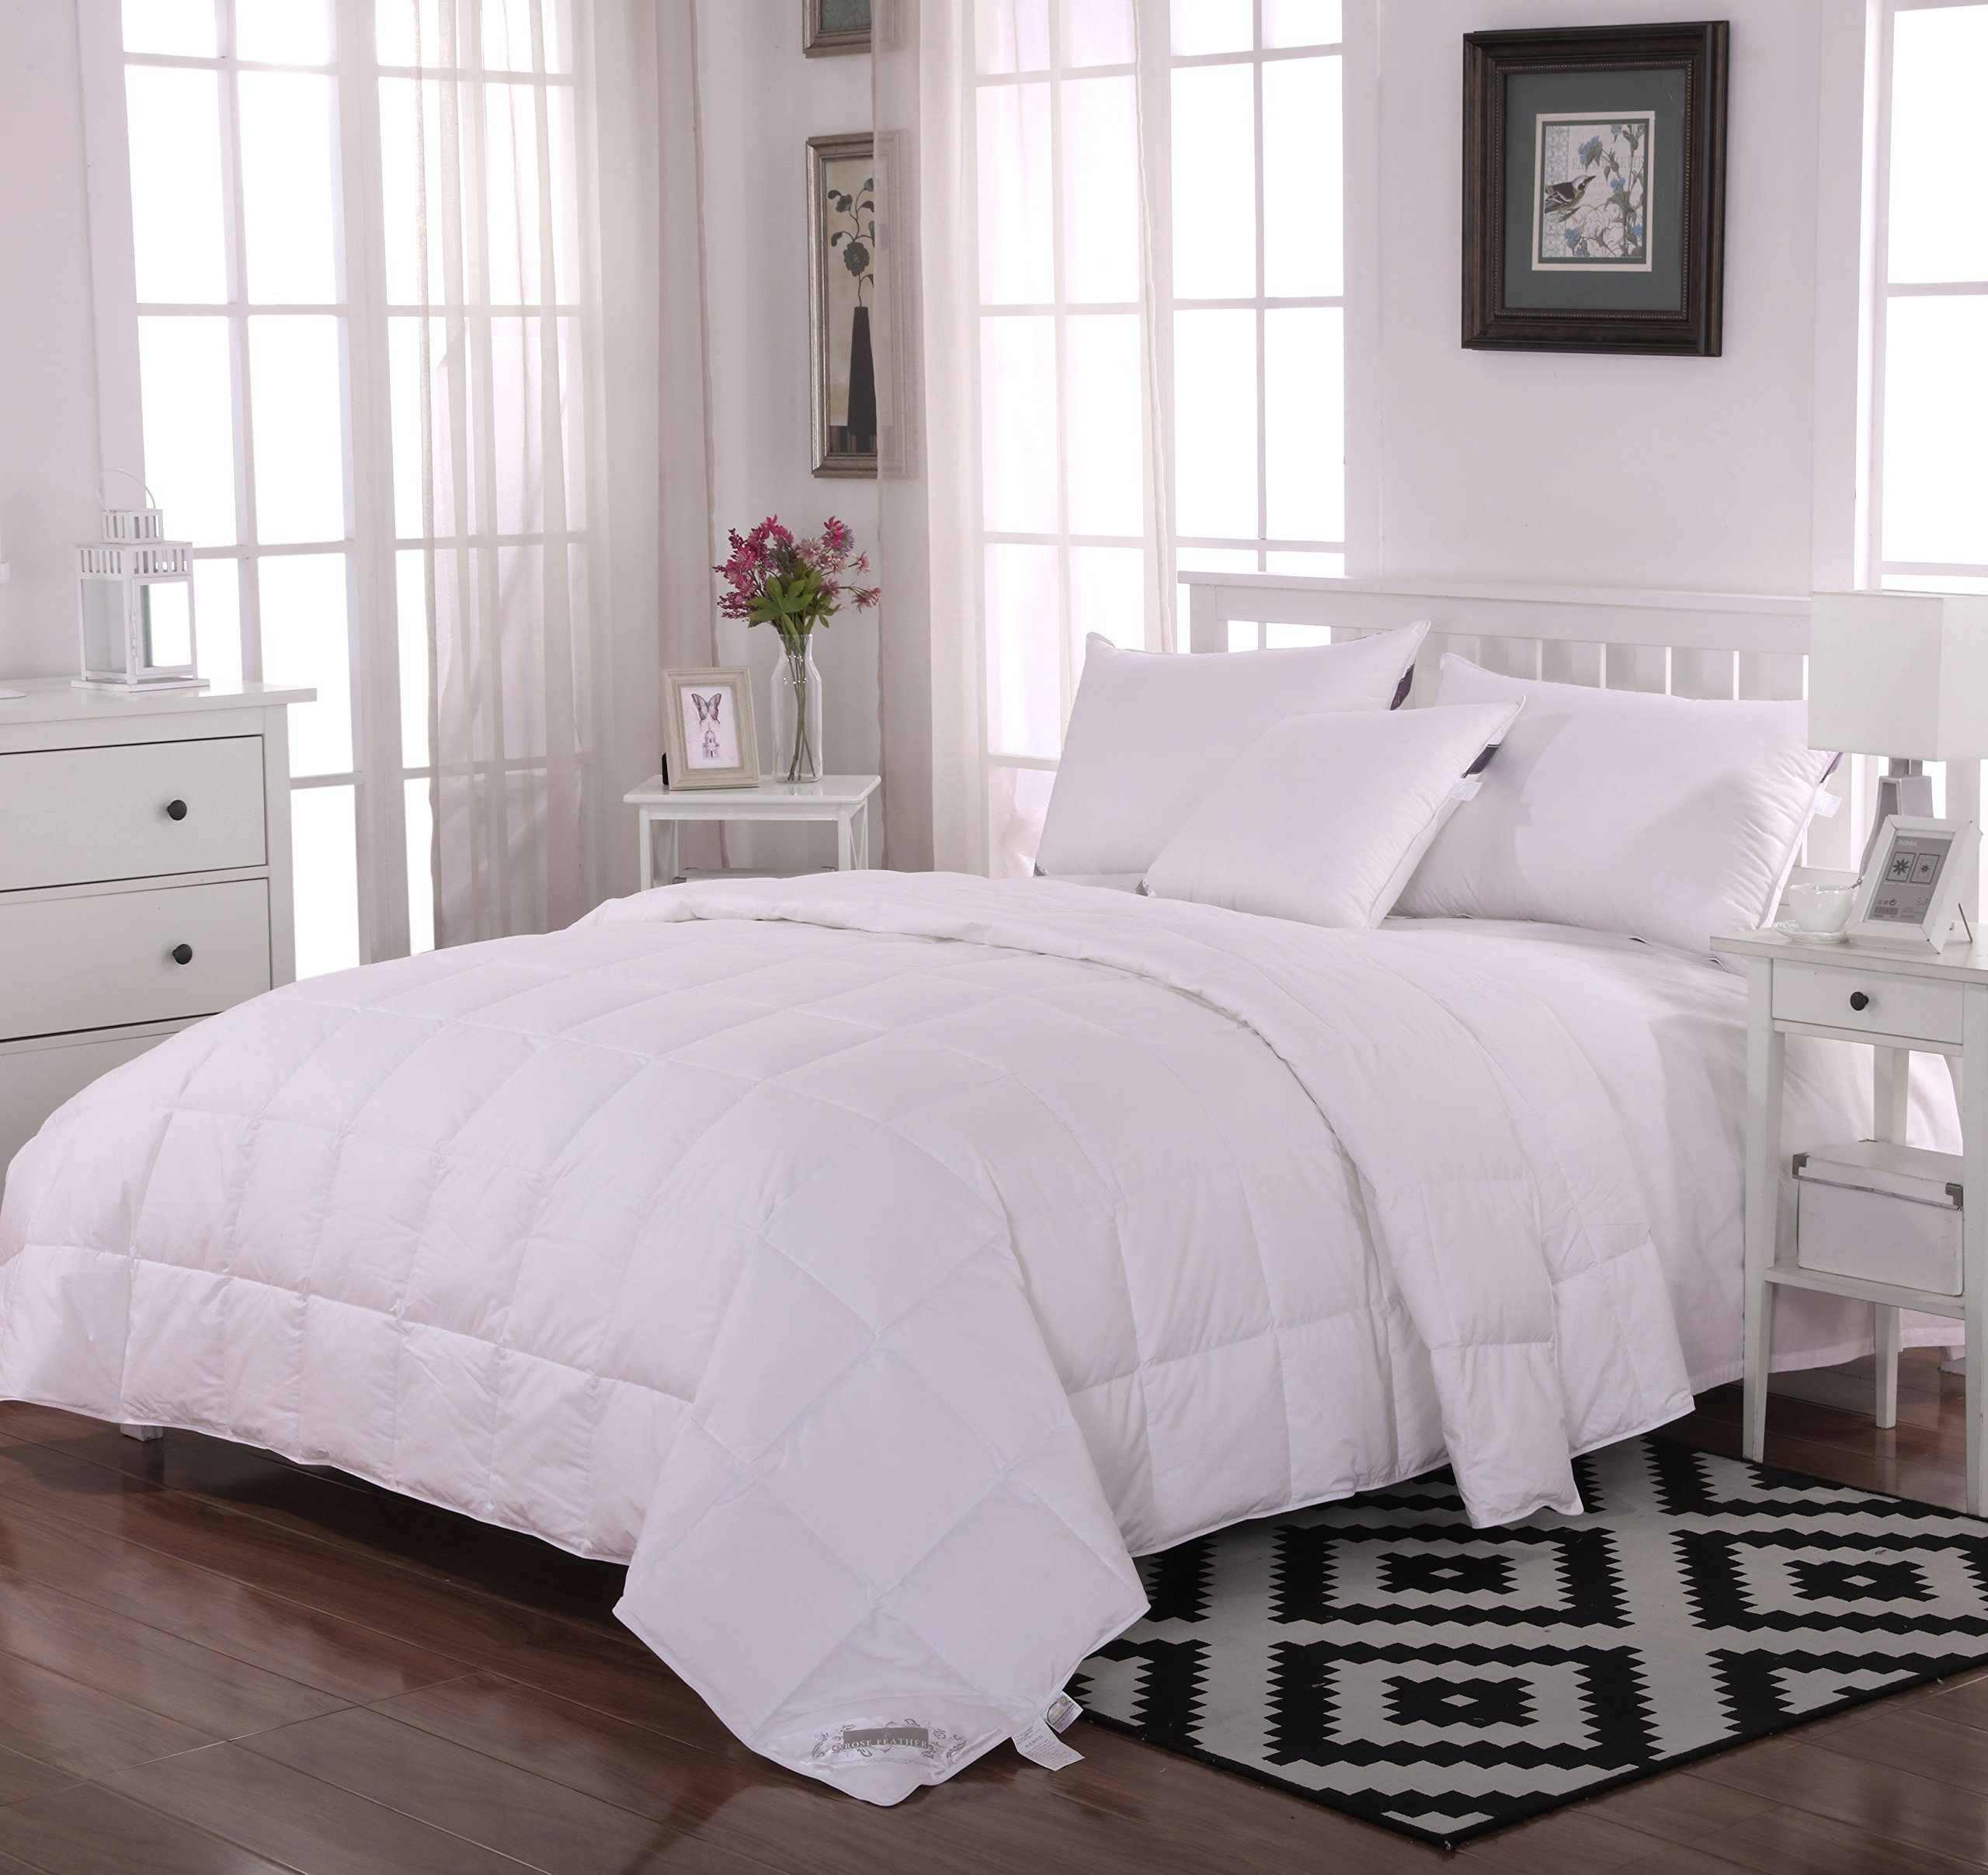 fredriksson summer new comforter goodbye products lifestyle elisabeth